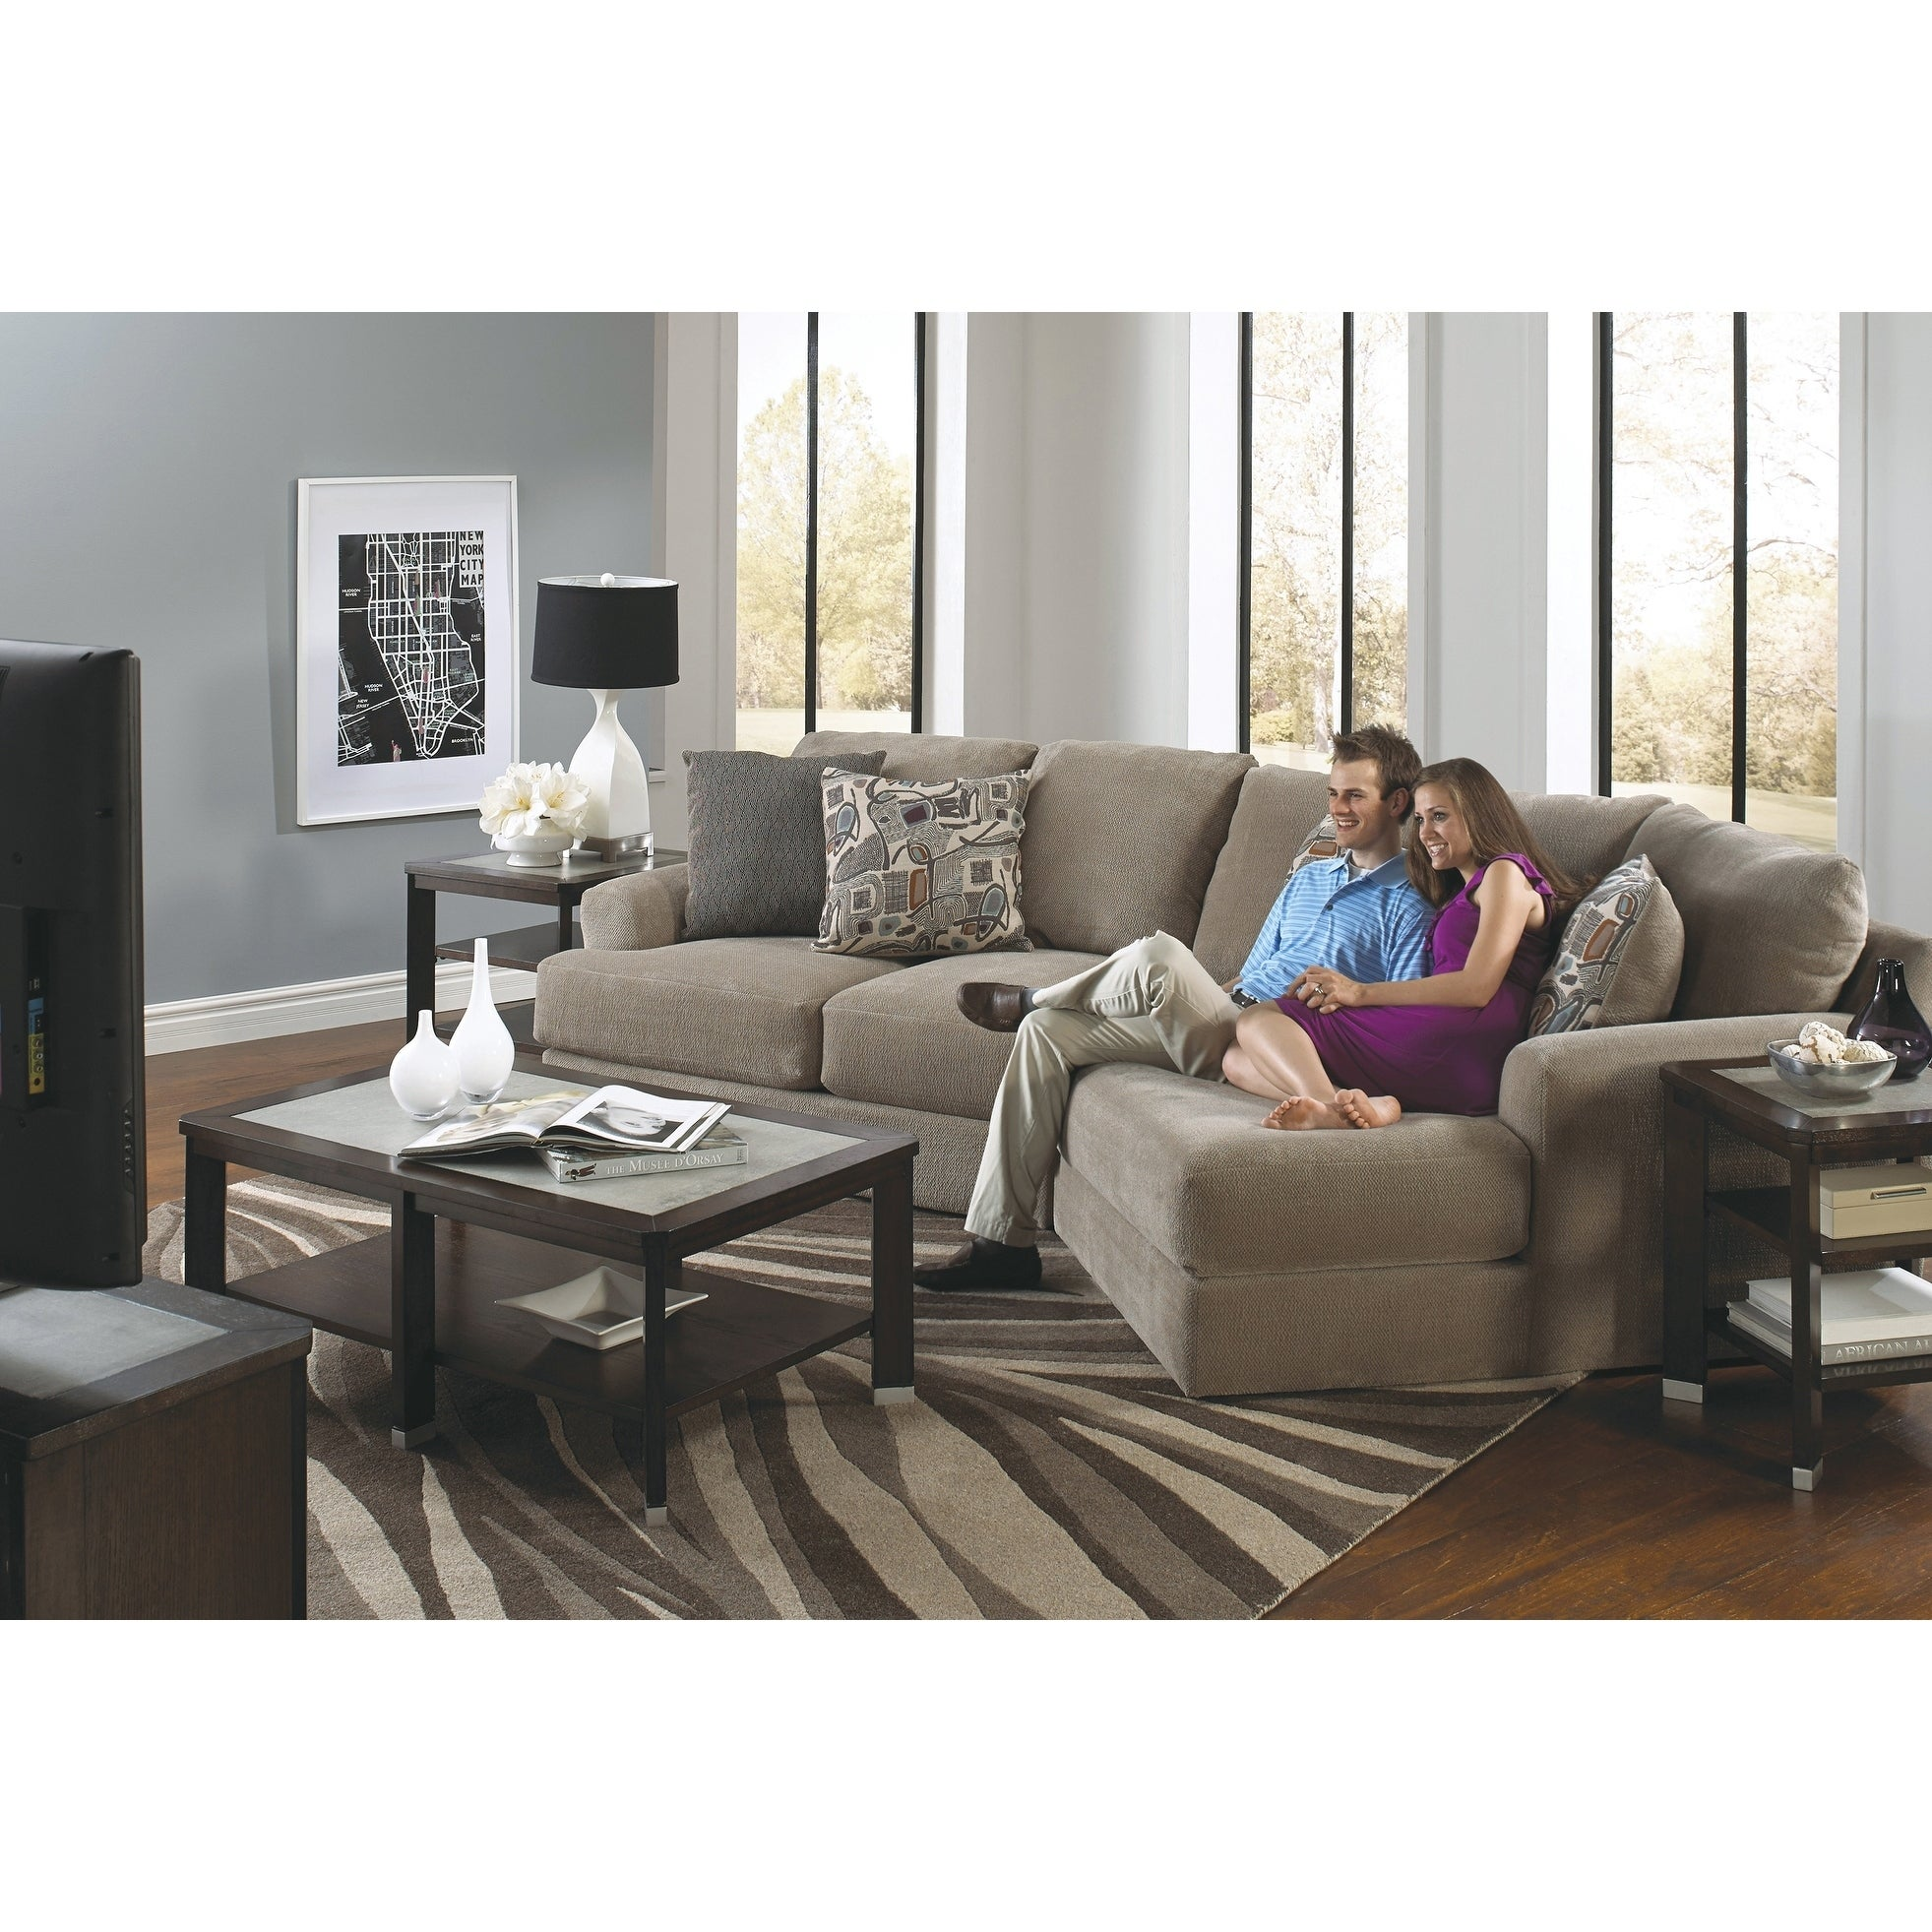 Beau Two Piece Sectional Sofa On